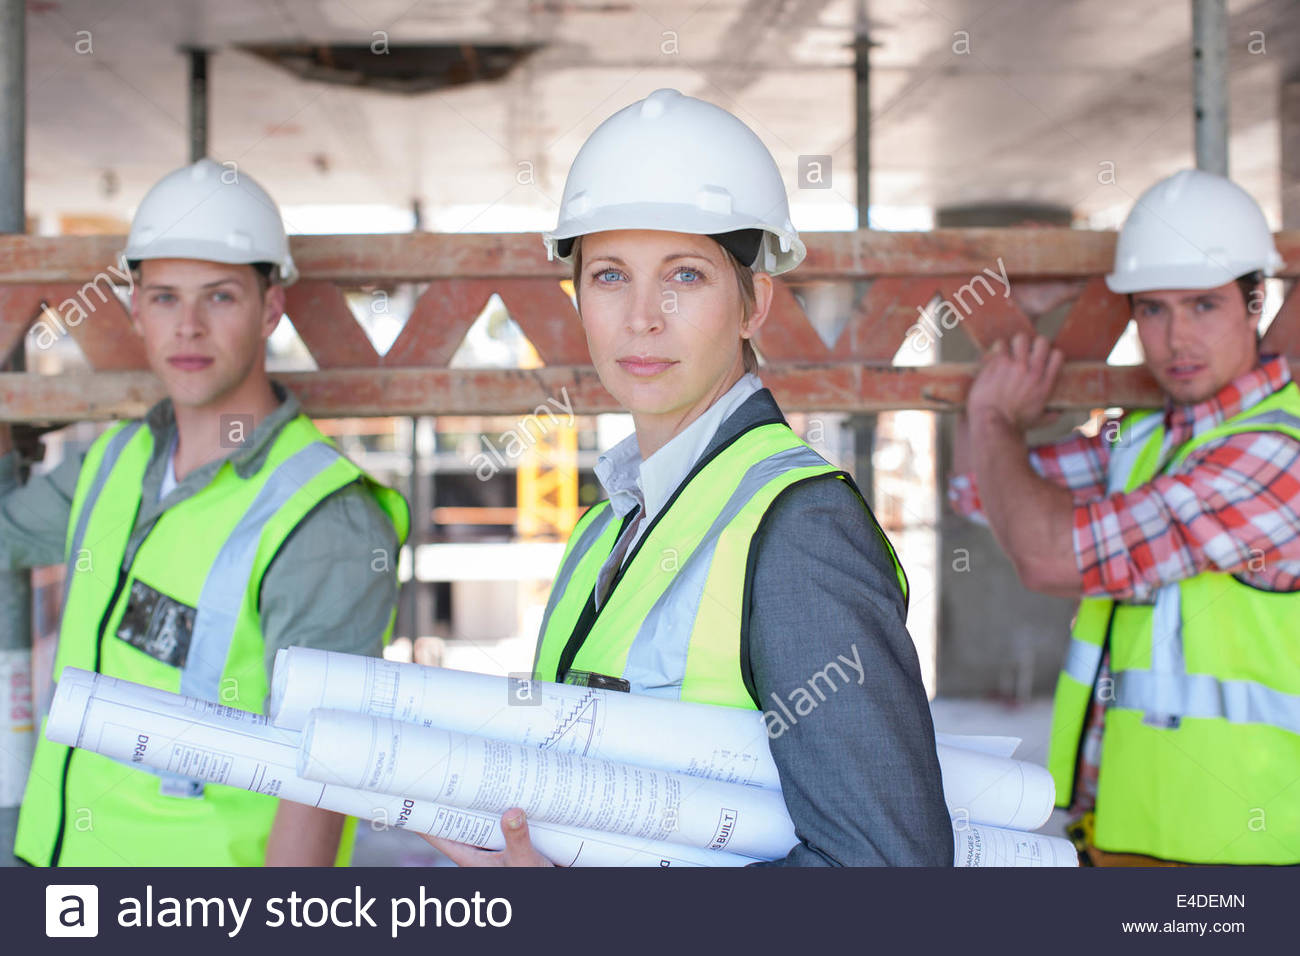 Construction workers on construction site - Stock Image